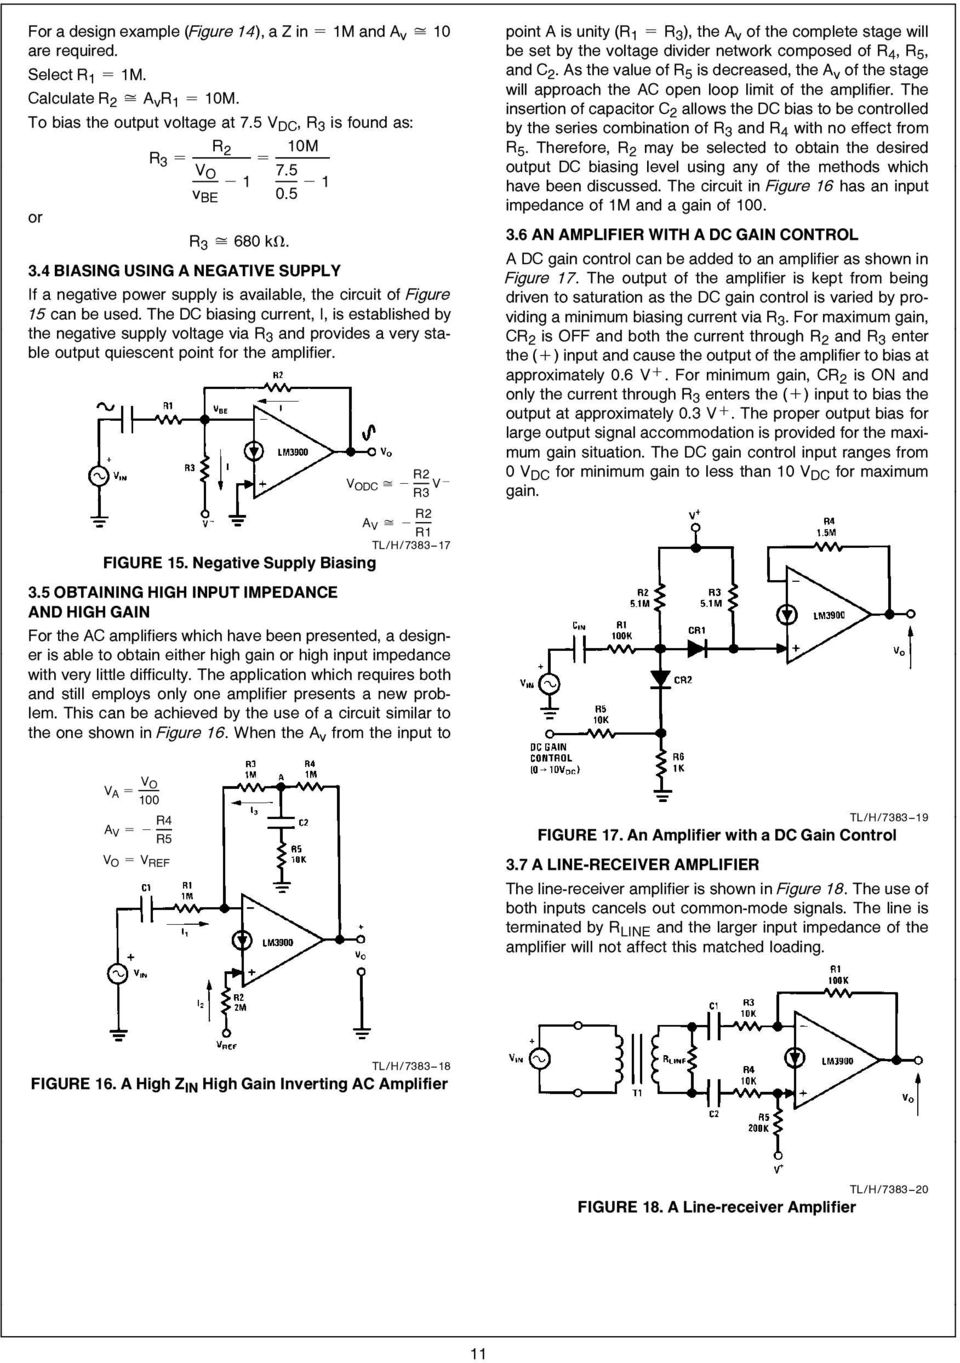 Lm3900 An 72 The A New Current Differencing Quad Of Plus Or Supply Bias Level At Ac Circuit Looks Like Your Basic Inverting Voltage Via R 3 And Provides Very Stable Output Quiescent Point For Amplifier